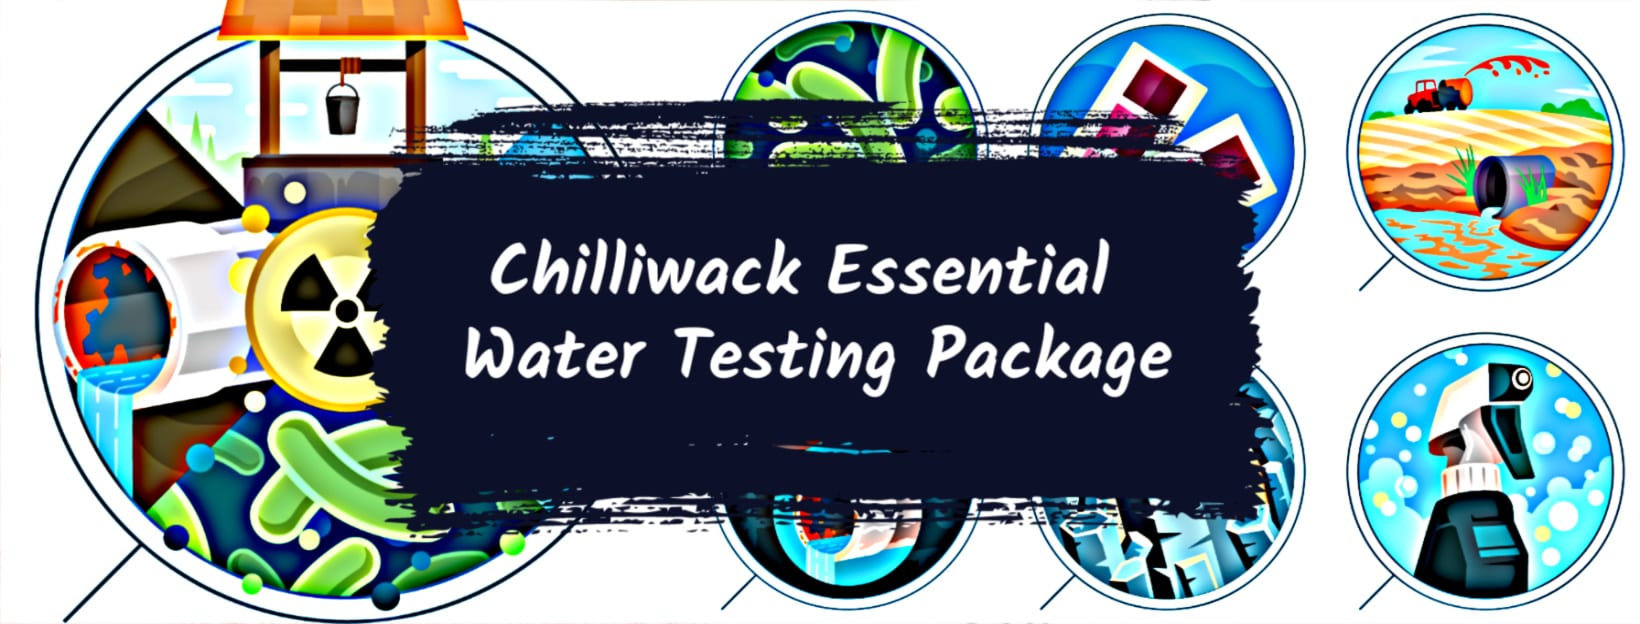 Chilliwack Water Test Kits- Drinking Water - Well Water - Tap Water Testing Services